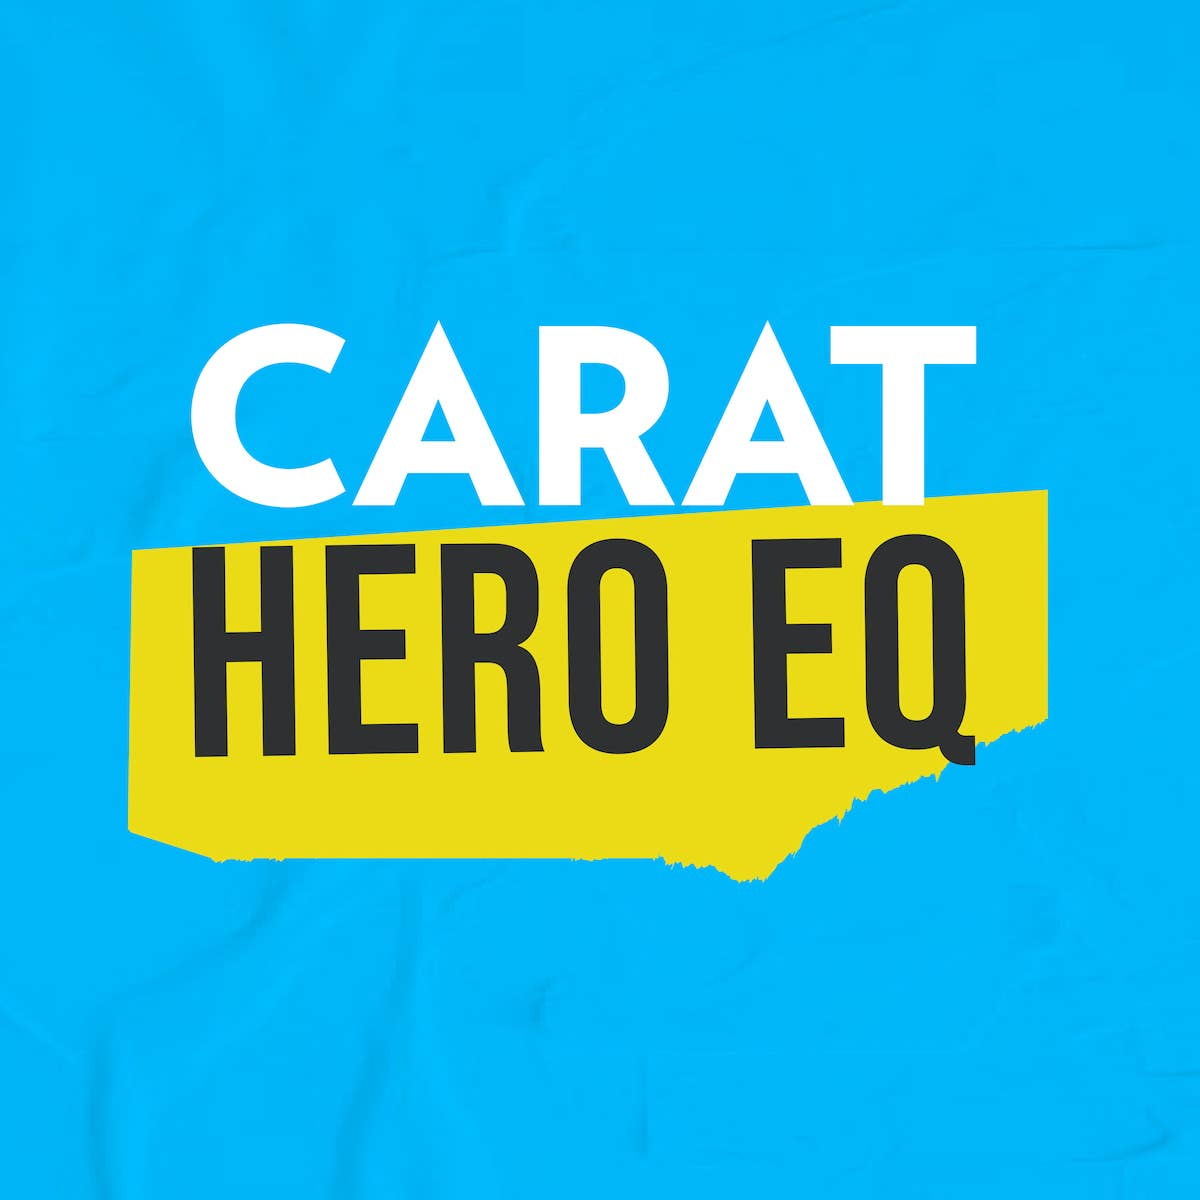 Carat US and Hero Collective to Form Strategic Partnership Focused on Creating Impactful Strategies & Content Through Cultural Understanding